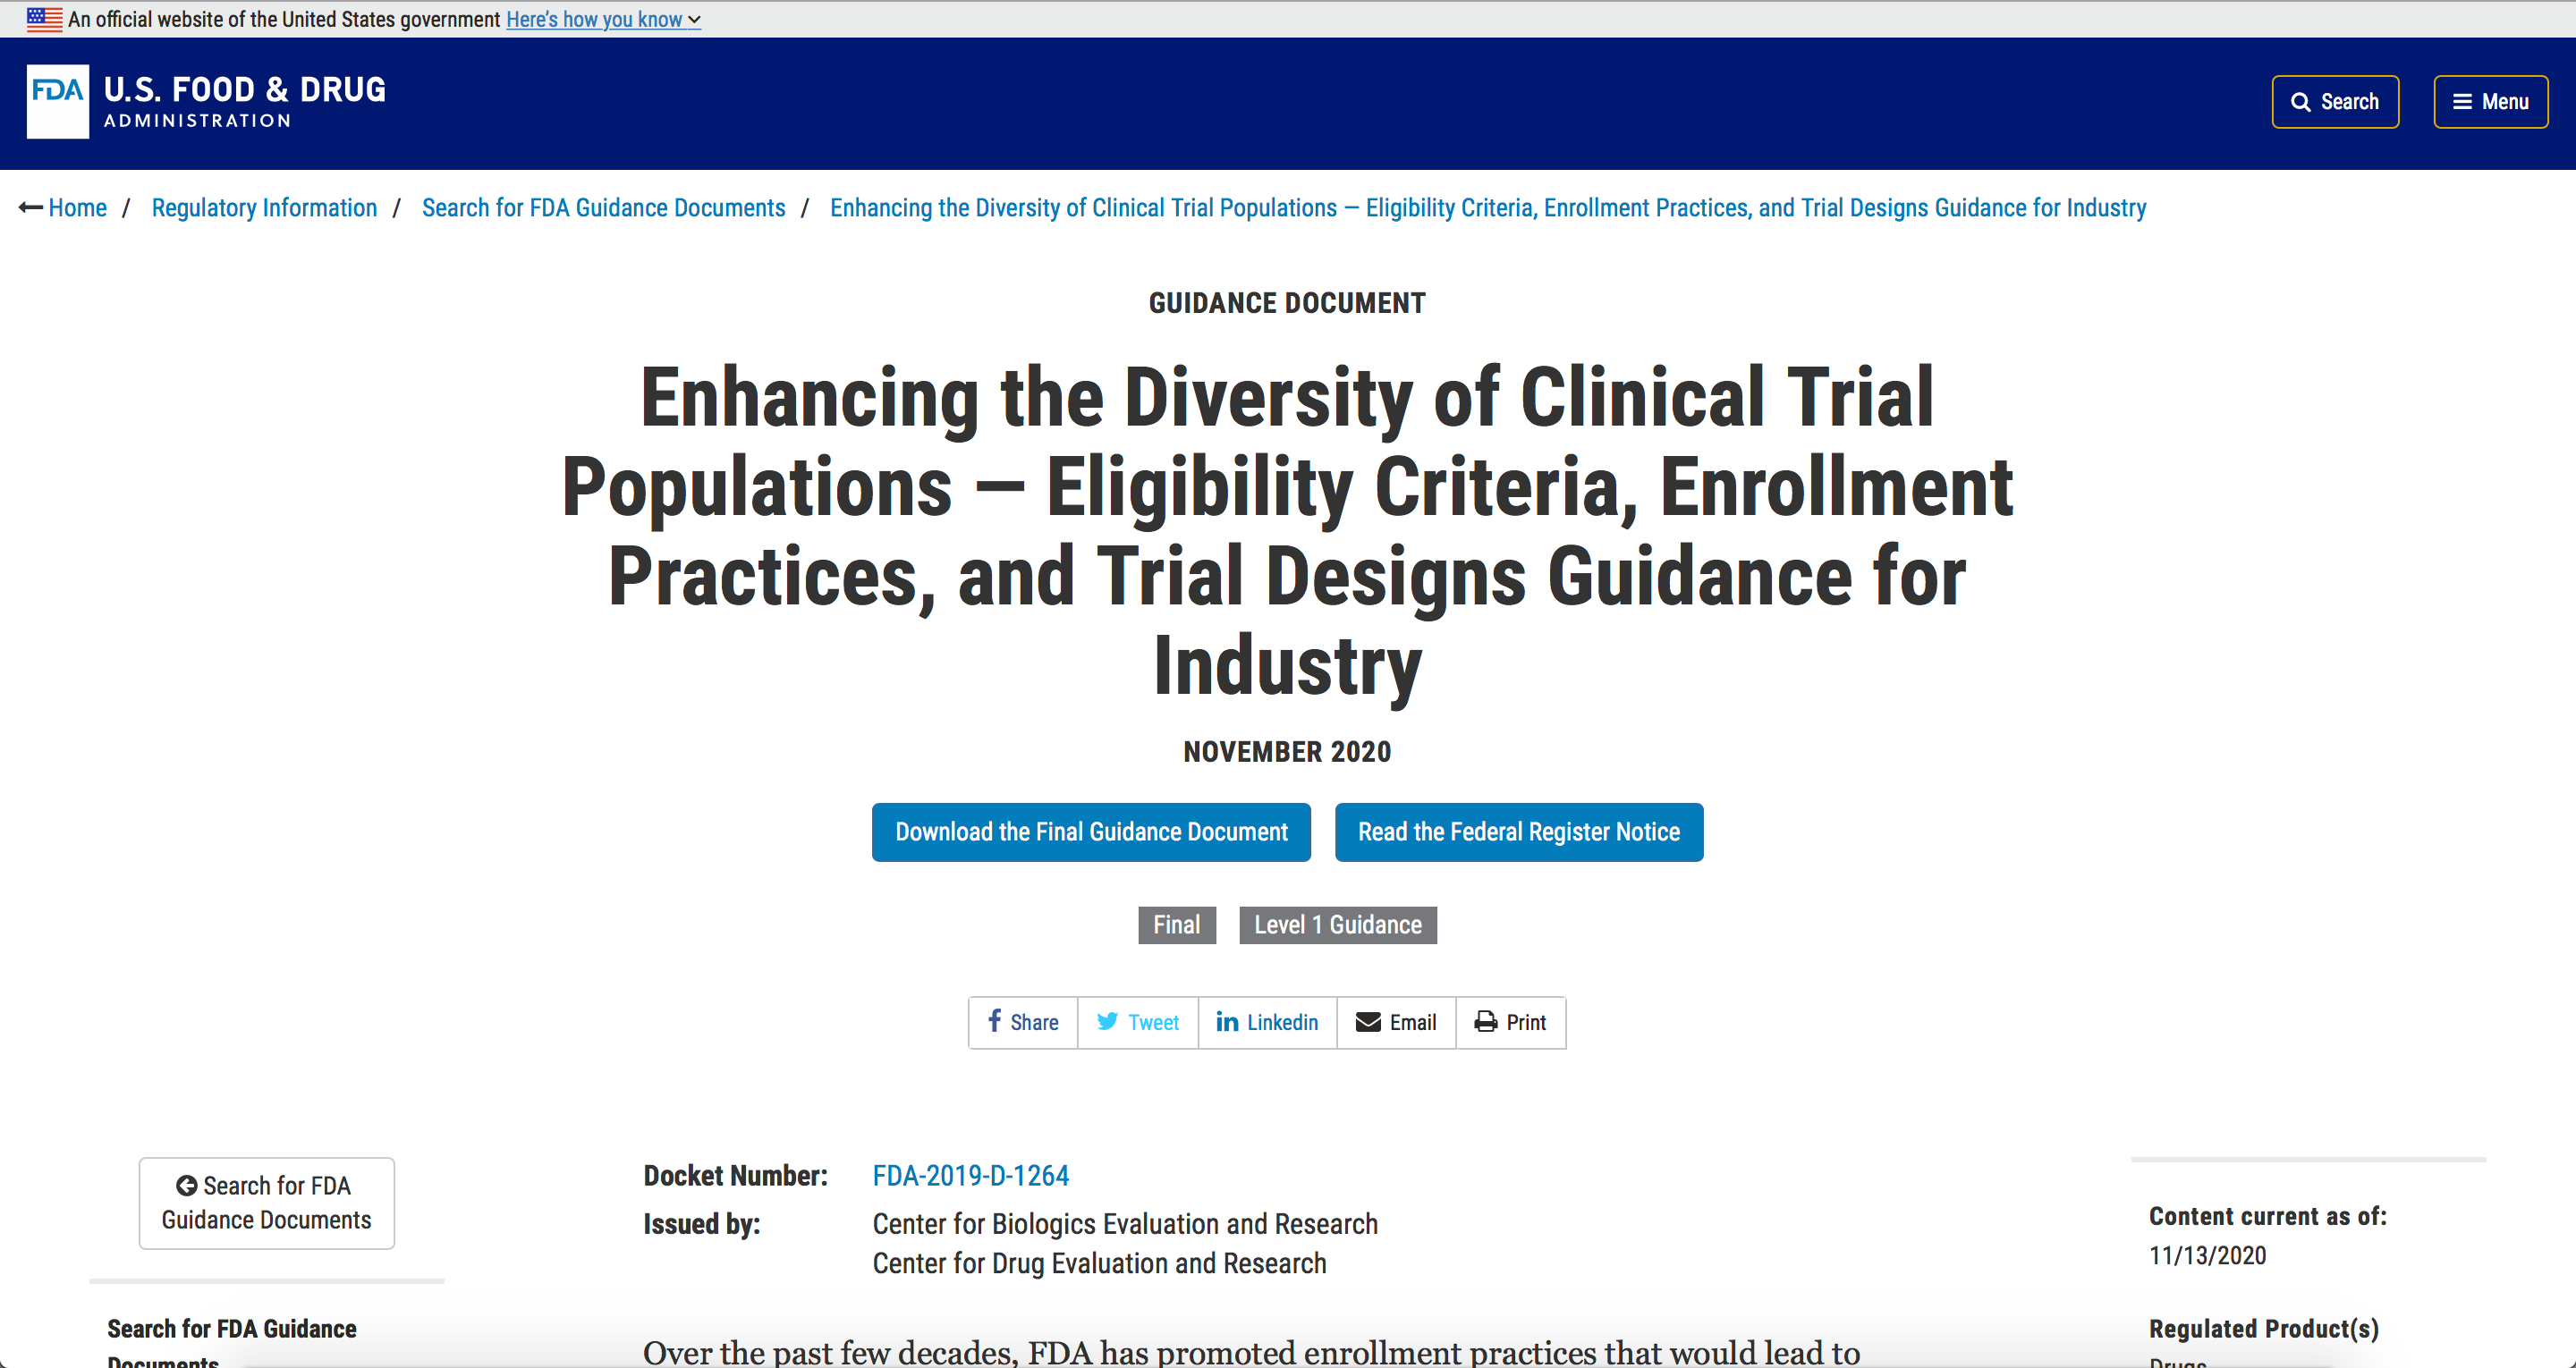 Enhancing Diversity of Clinical Trial Populations Image